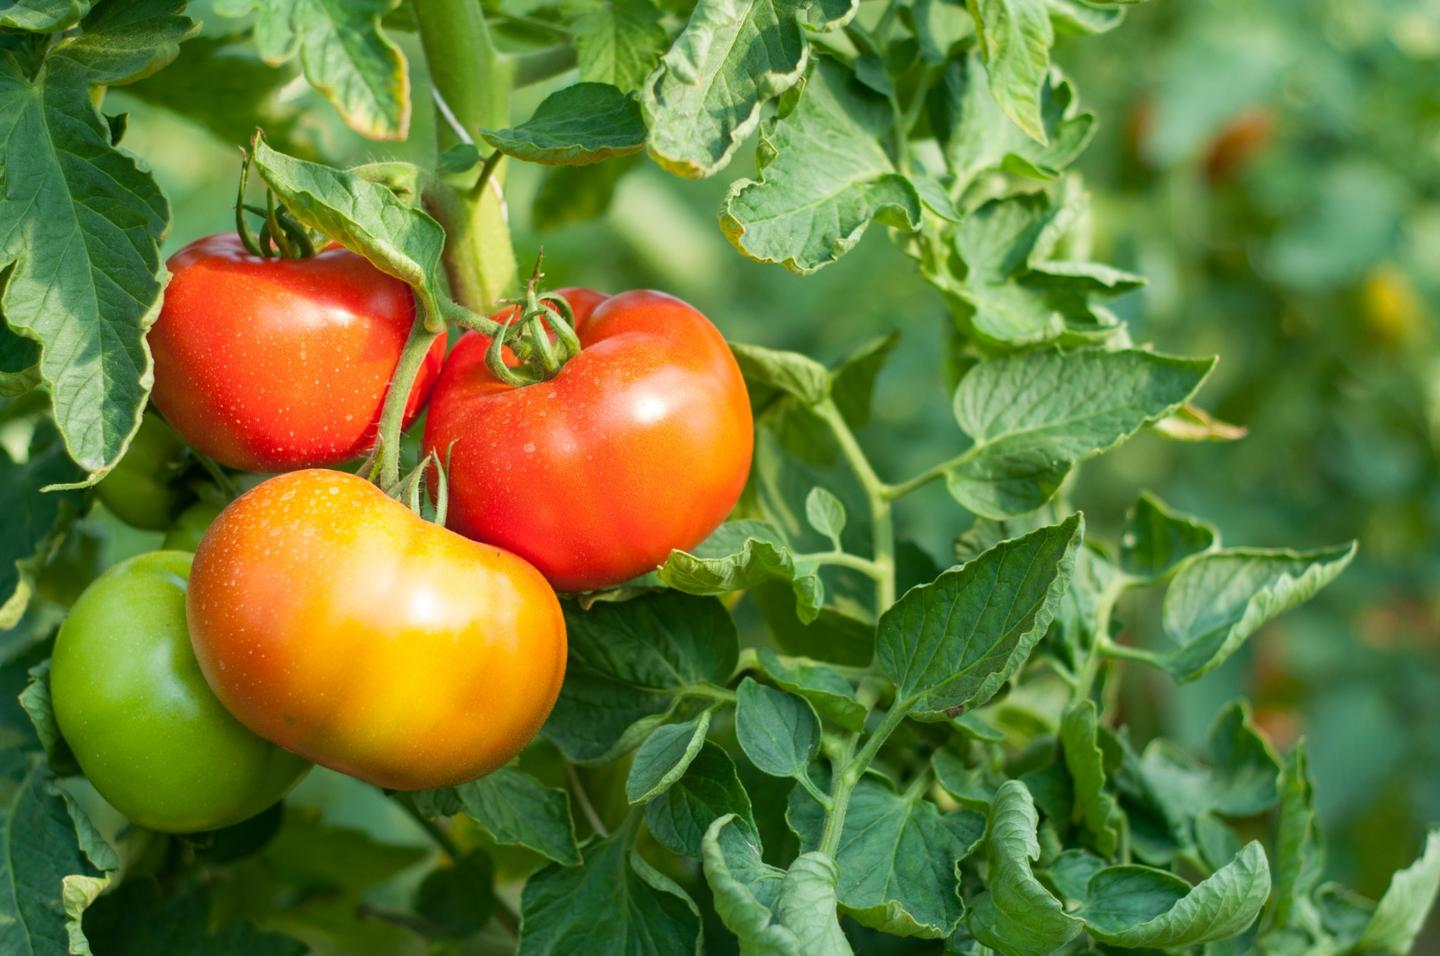 You may not know it, but tomatoes are a good source of hexenyl butyrate